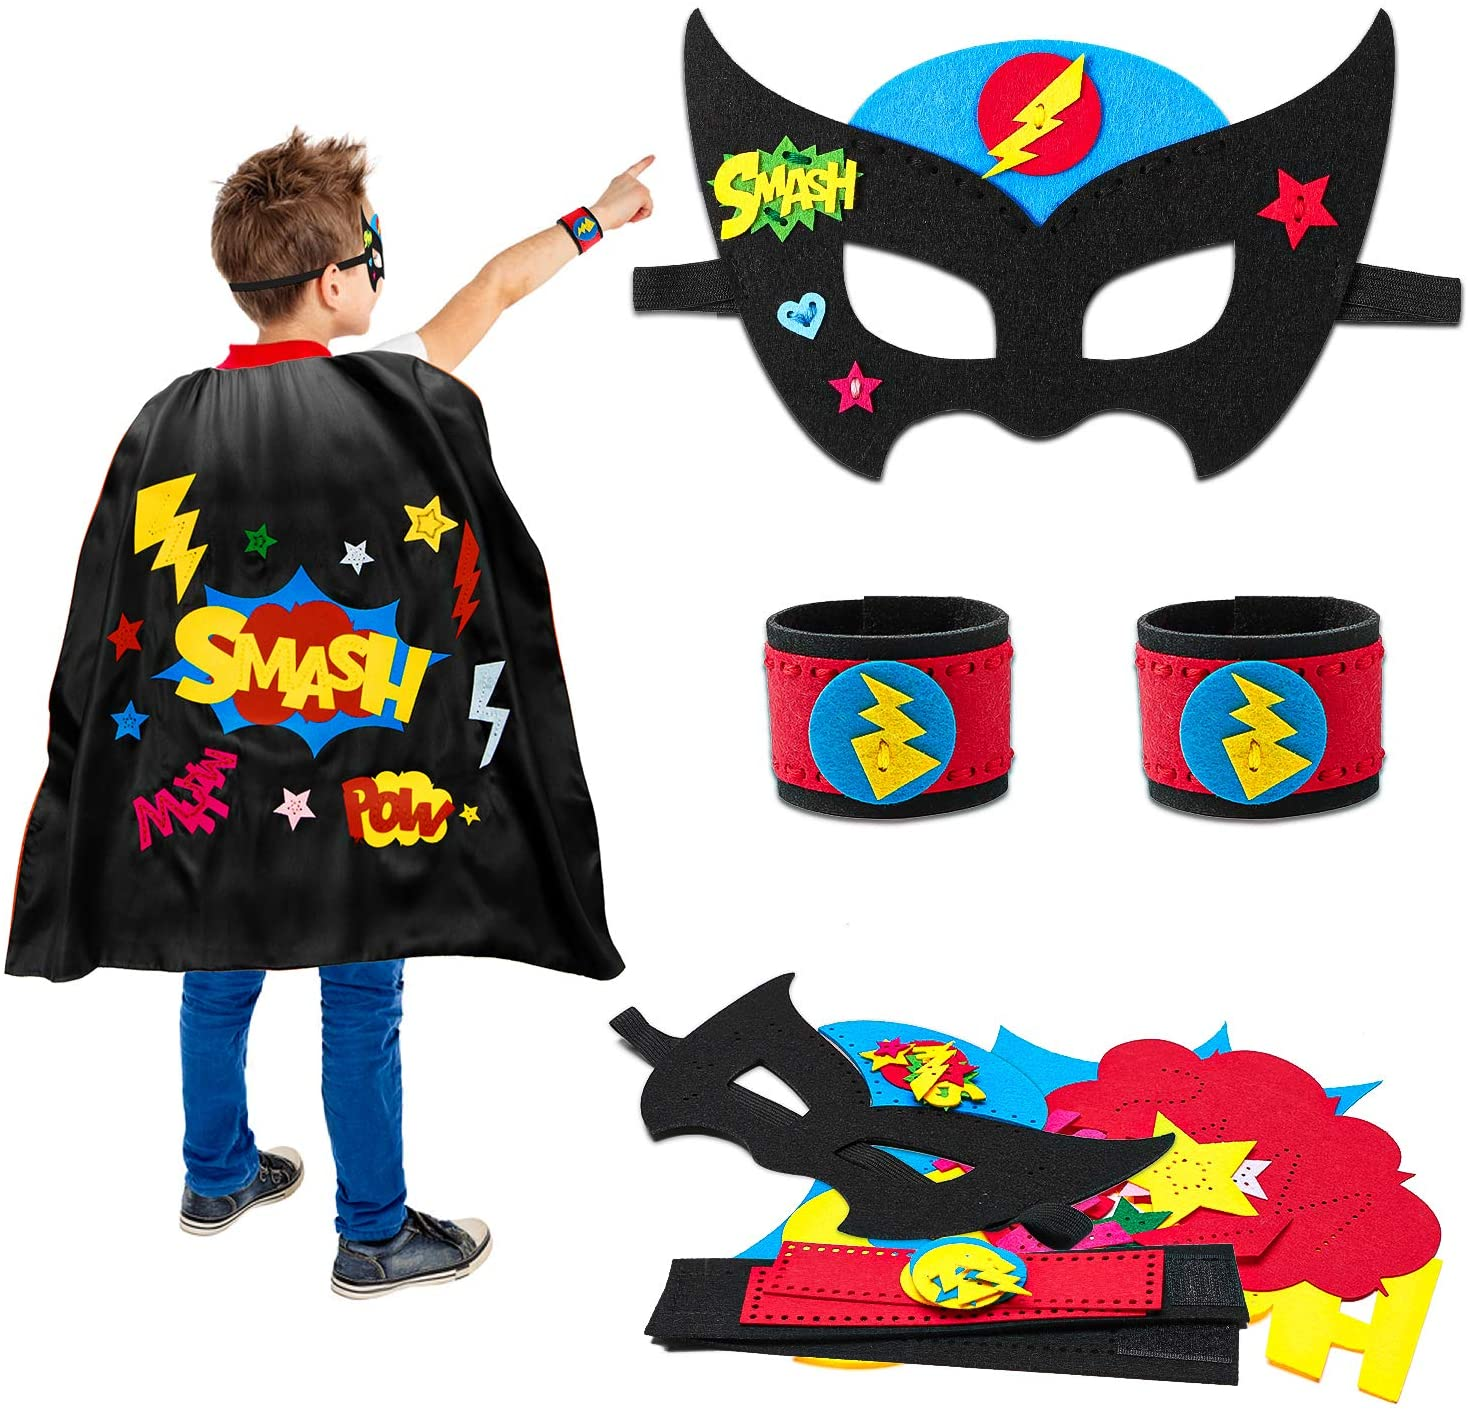 ANGOLIO Sewing Kit Superhero DIY Art Craft Set Felt Kits Learn to Sew Crafts Supplies Sew Your Own Watch Band Cloak Mask Stitch Craft Project with Clear Instructions for Beginners Boys Girls